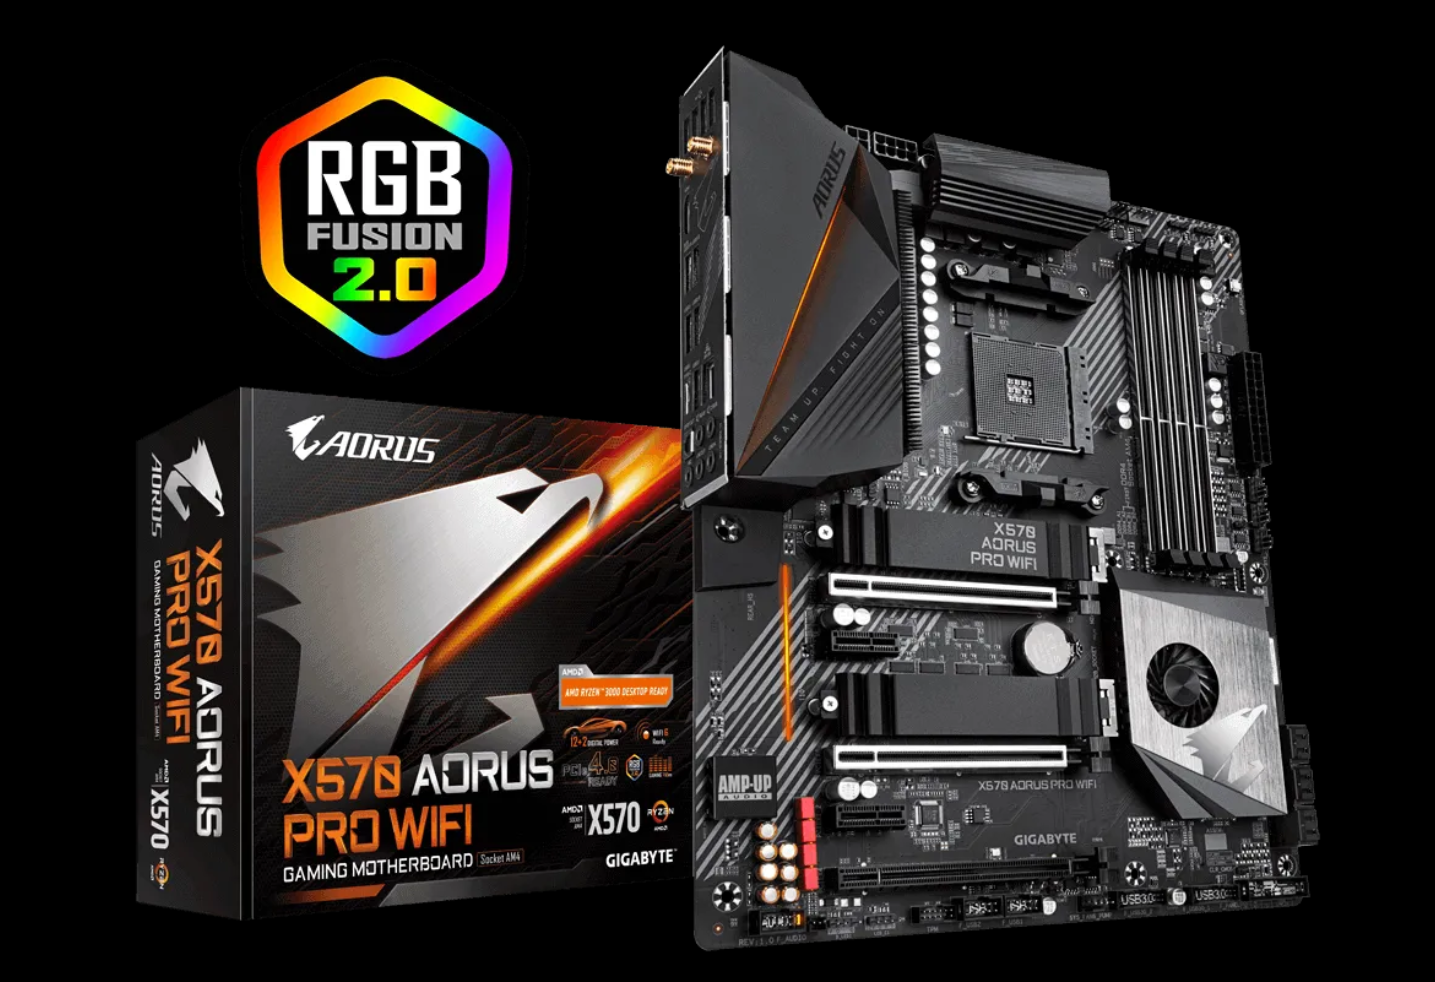 gigabyte-x570s-aorus-pro-ax-passively-cooled-motherboard-with-amd-ryzen-7-5700g-cezanne-apu-spotted